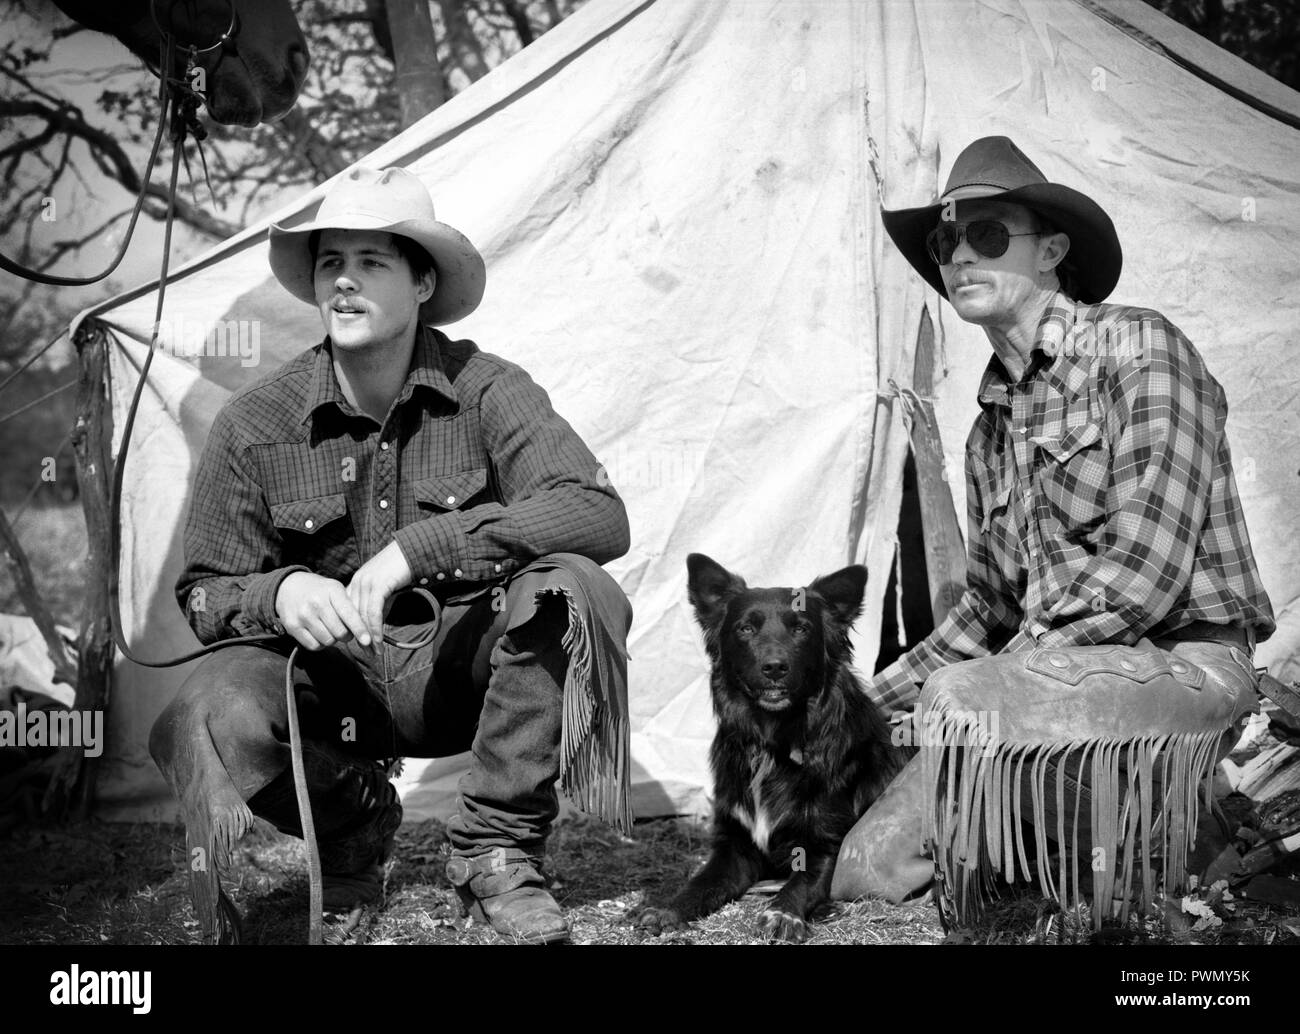 Two cowboys sitting outside their tent with dog - Stock Image